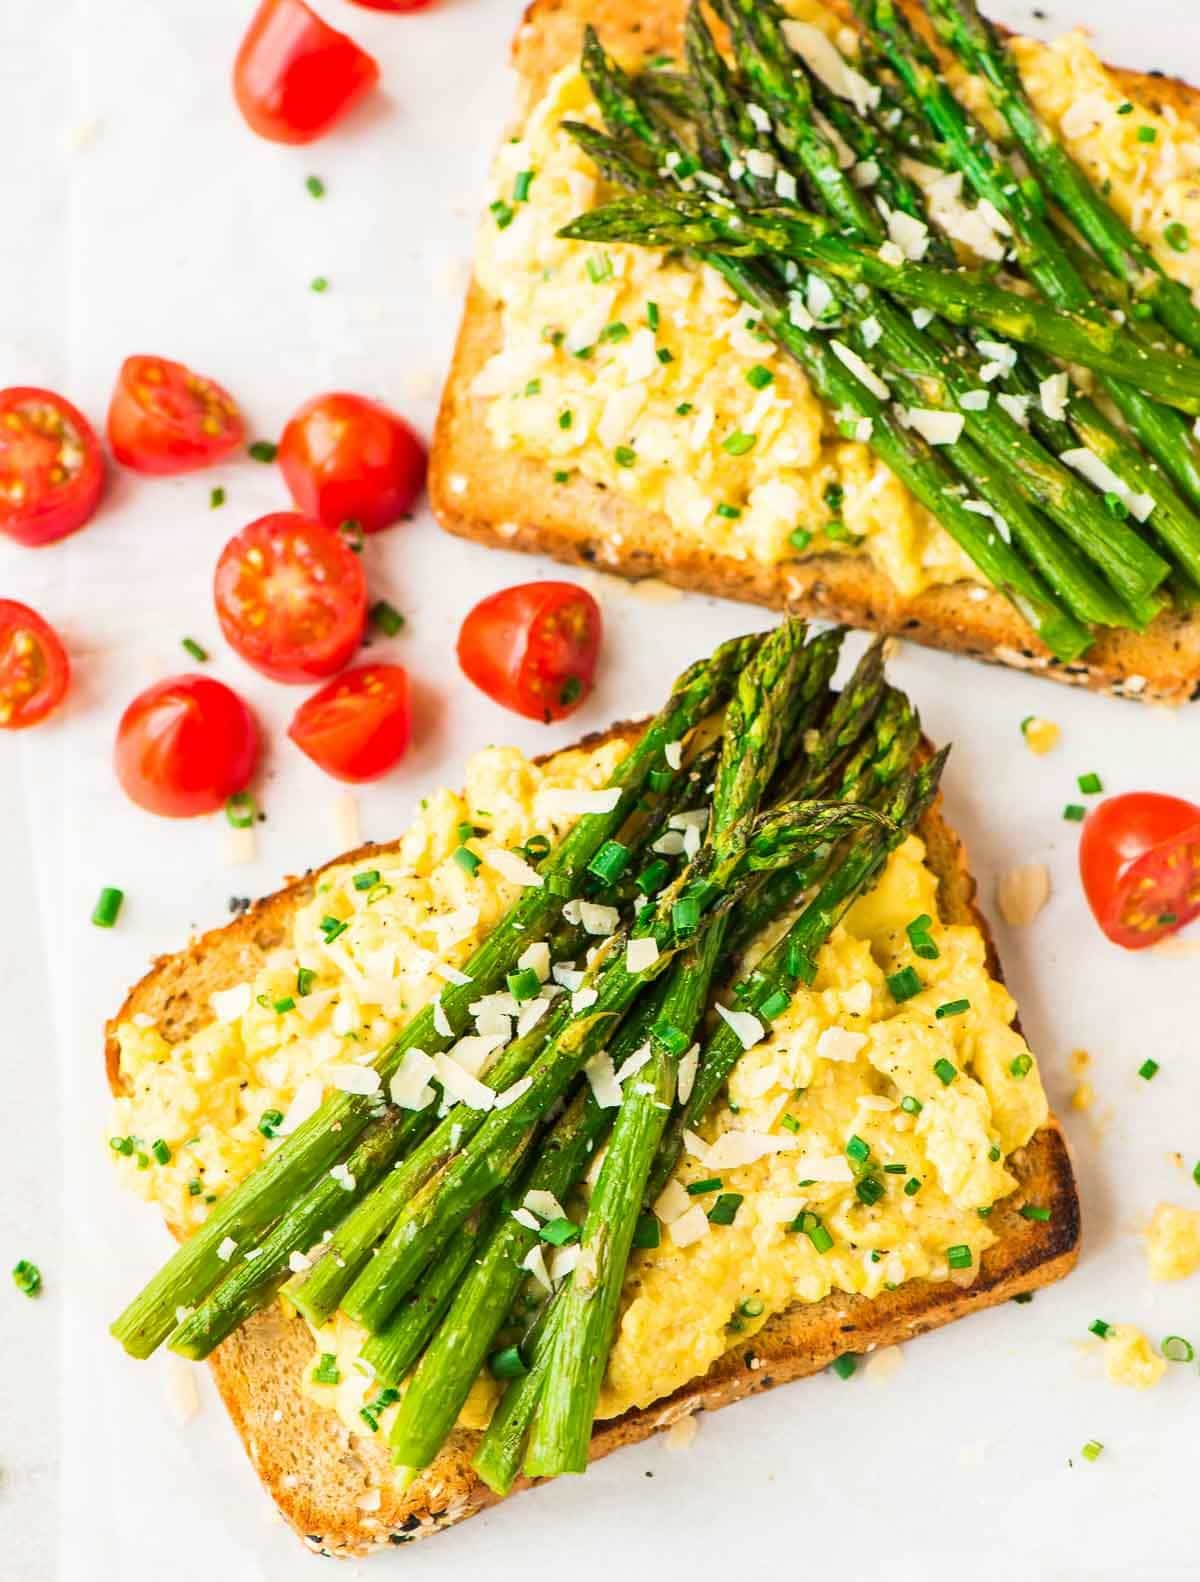 Asparagus Egg Toasts – A quick and easy high protein meal. Perfect for a healthy, high protein breakfast or dinner. Recipe at wellplated.com | @wellplated